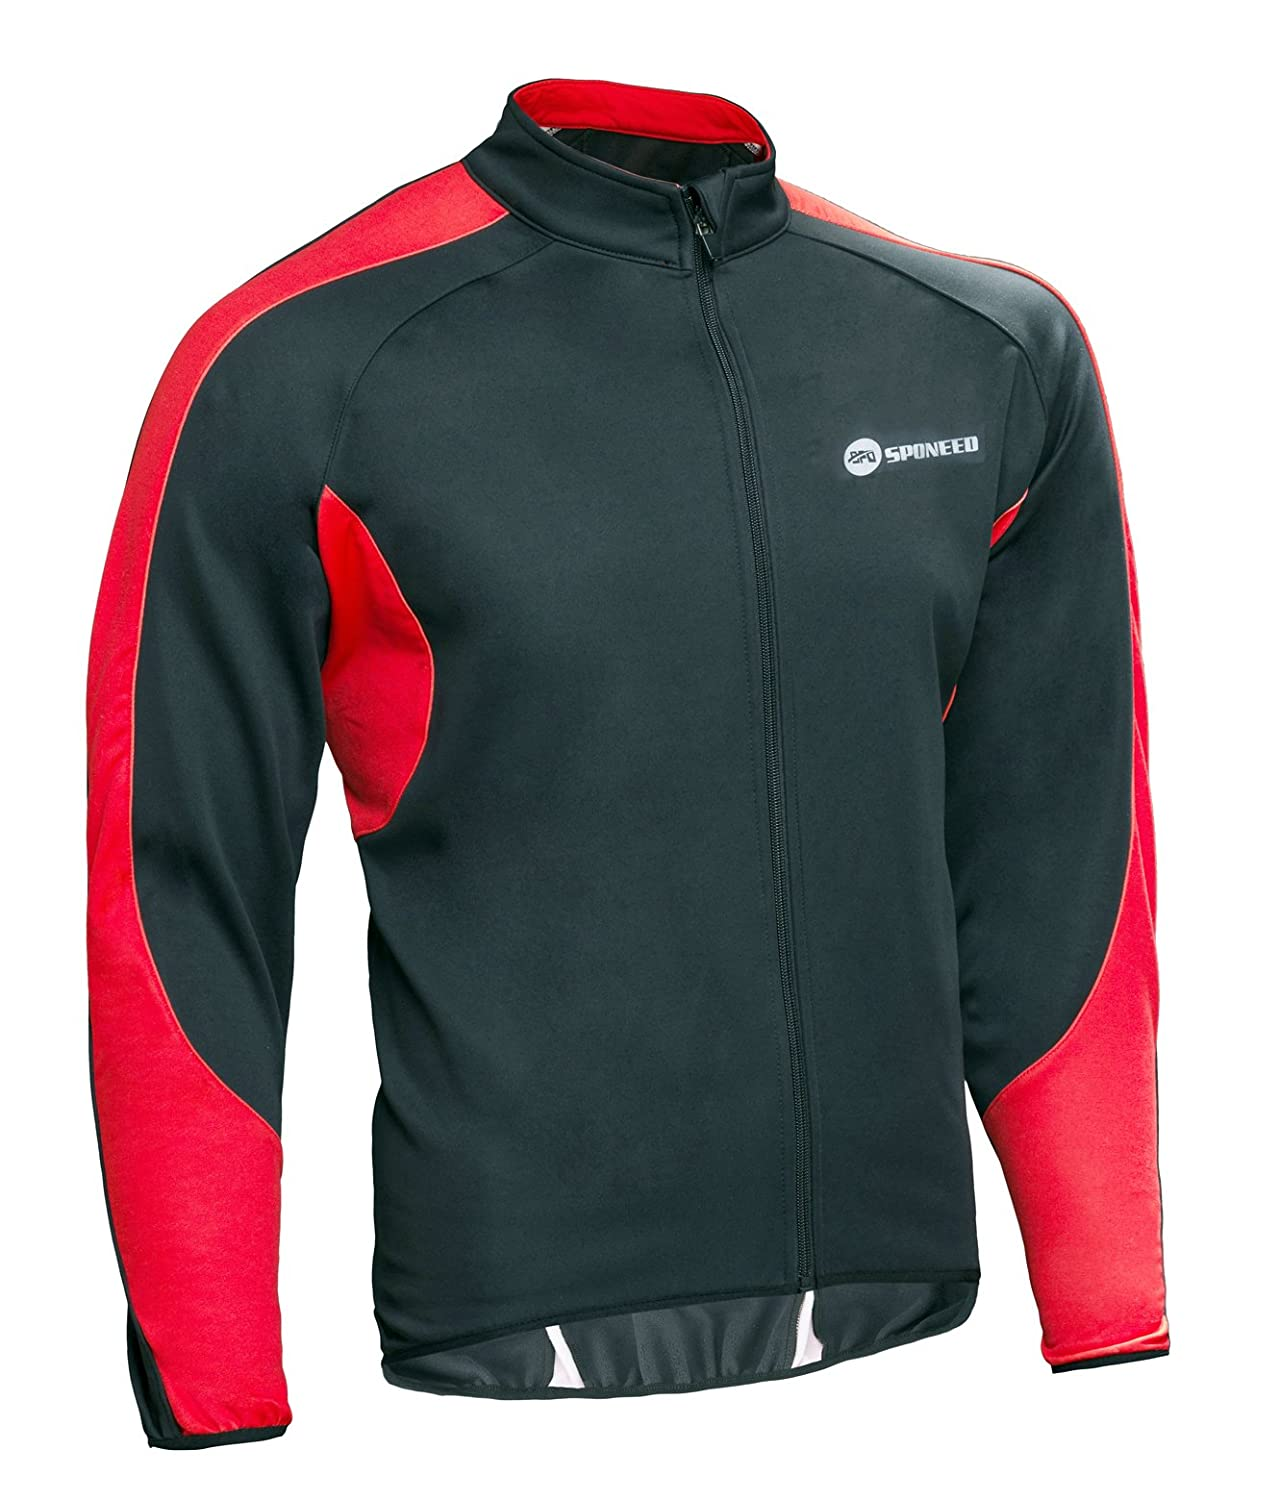 sponeed Mens Wind Jackets Cycling Fleece Coat Shirts Winter Windproof Thermal Bicycle Bike Clothes